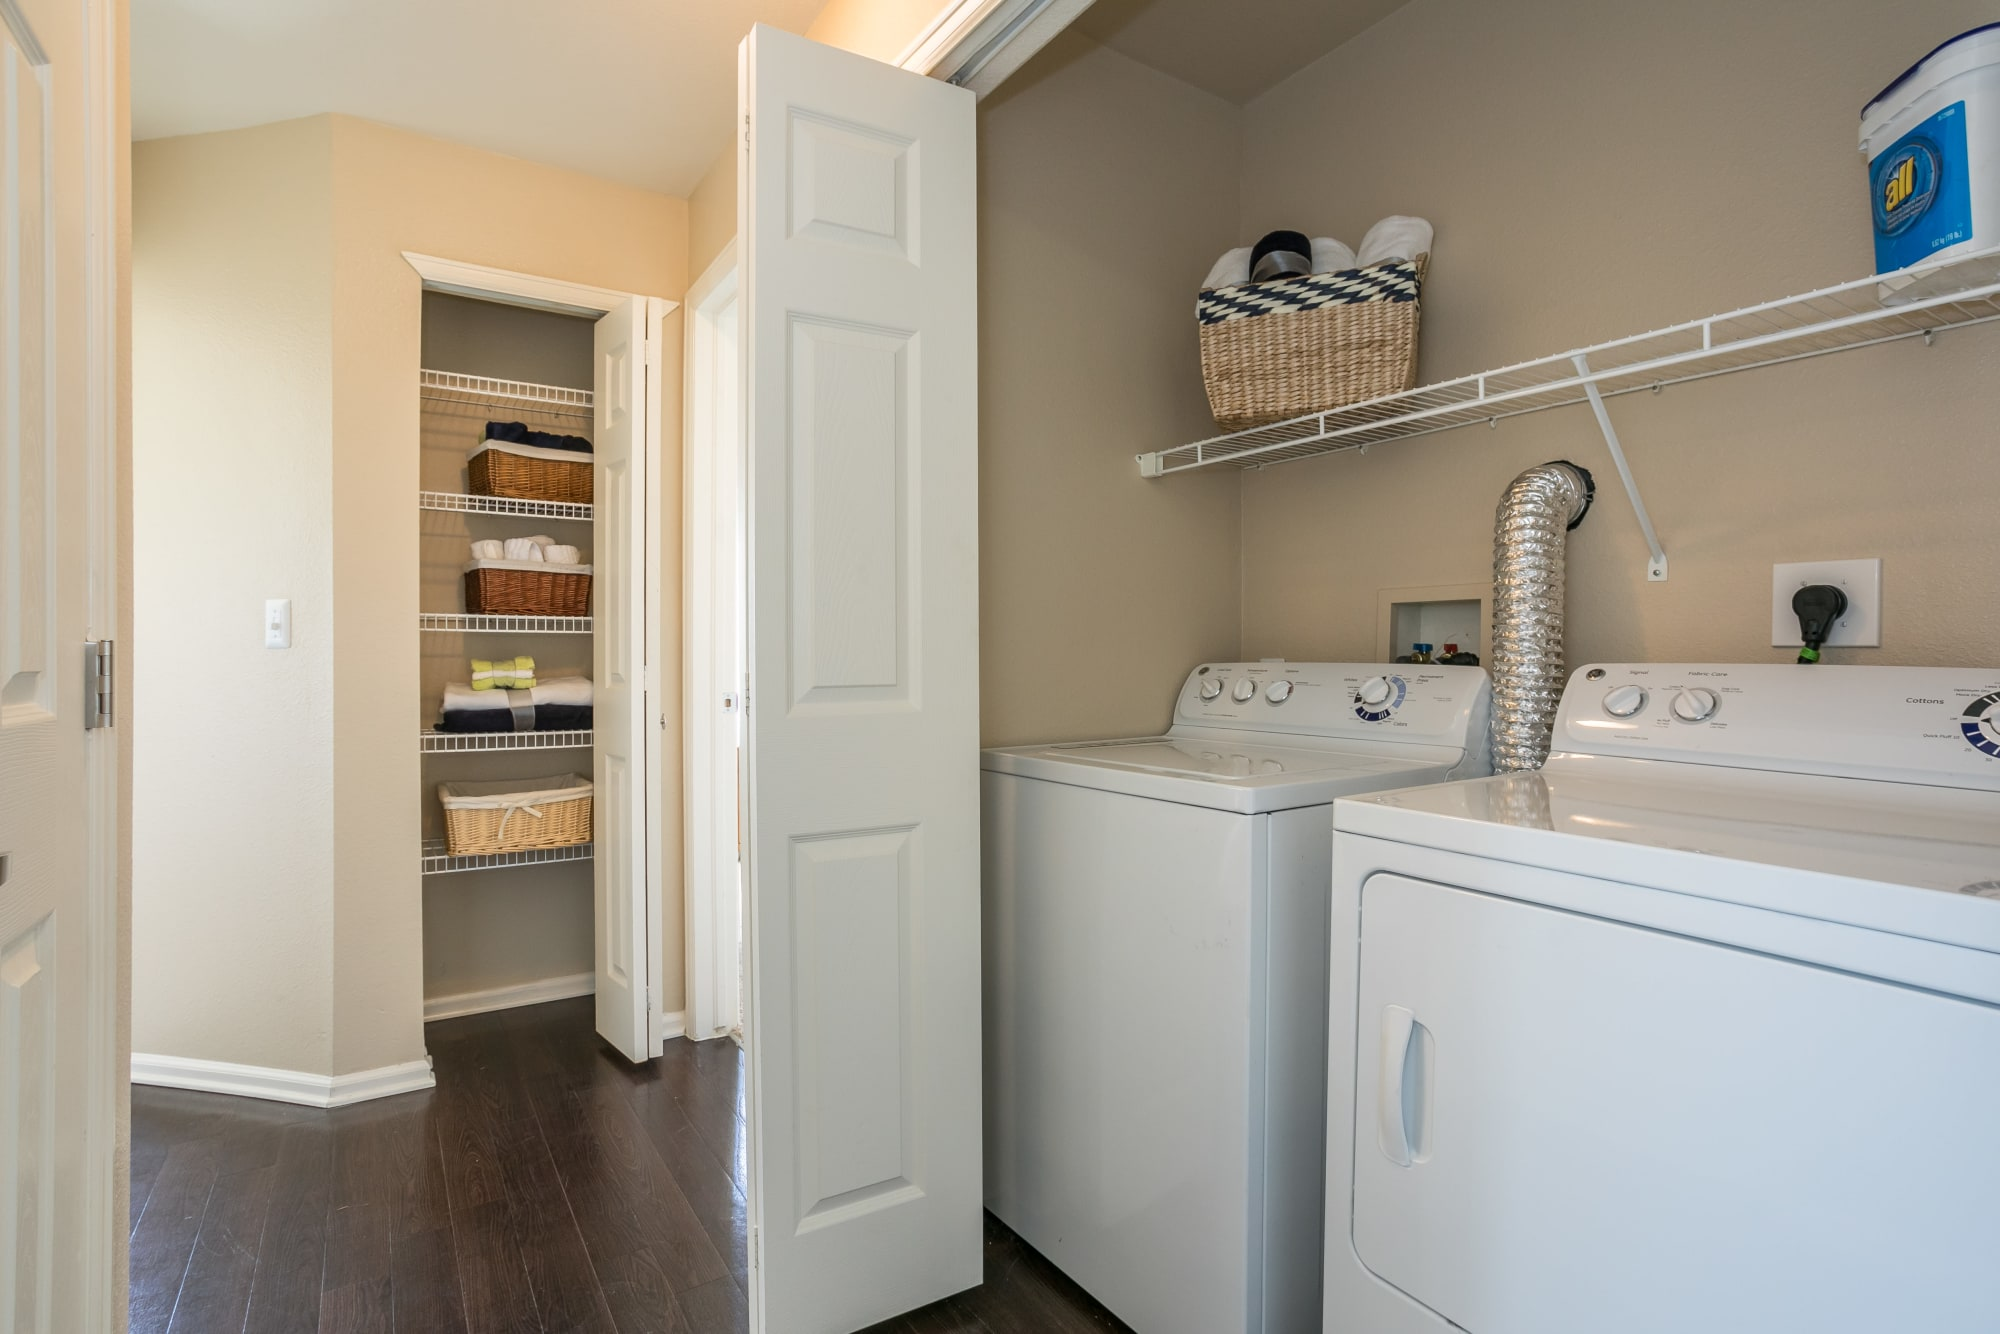 Laundry room at Westridge Apartments in Aurora, Colorado